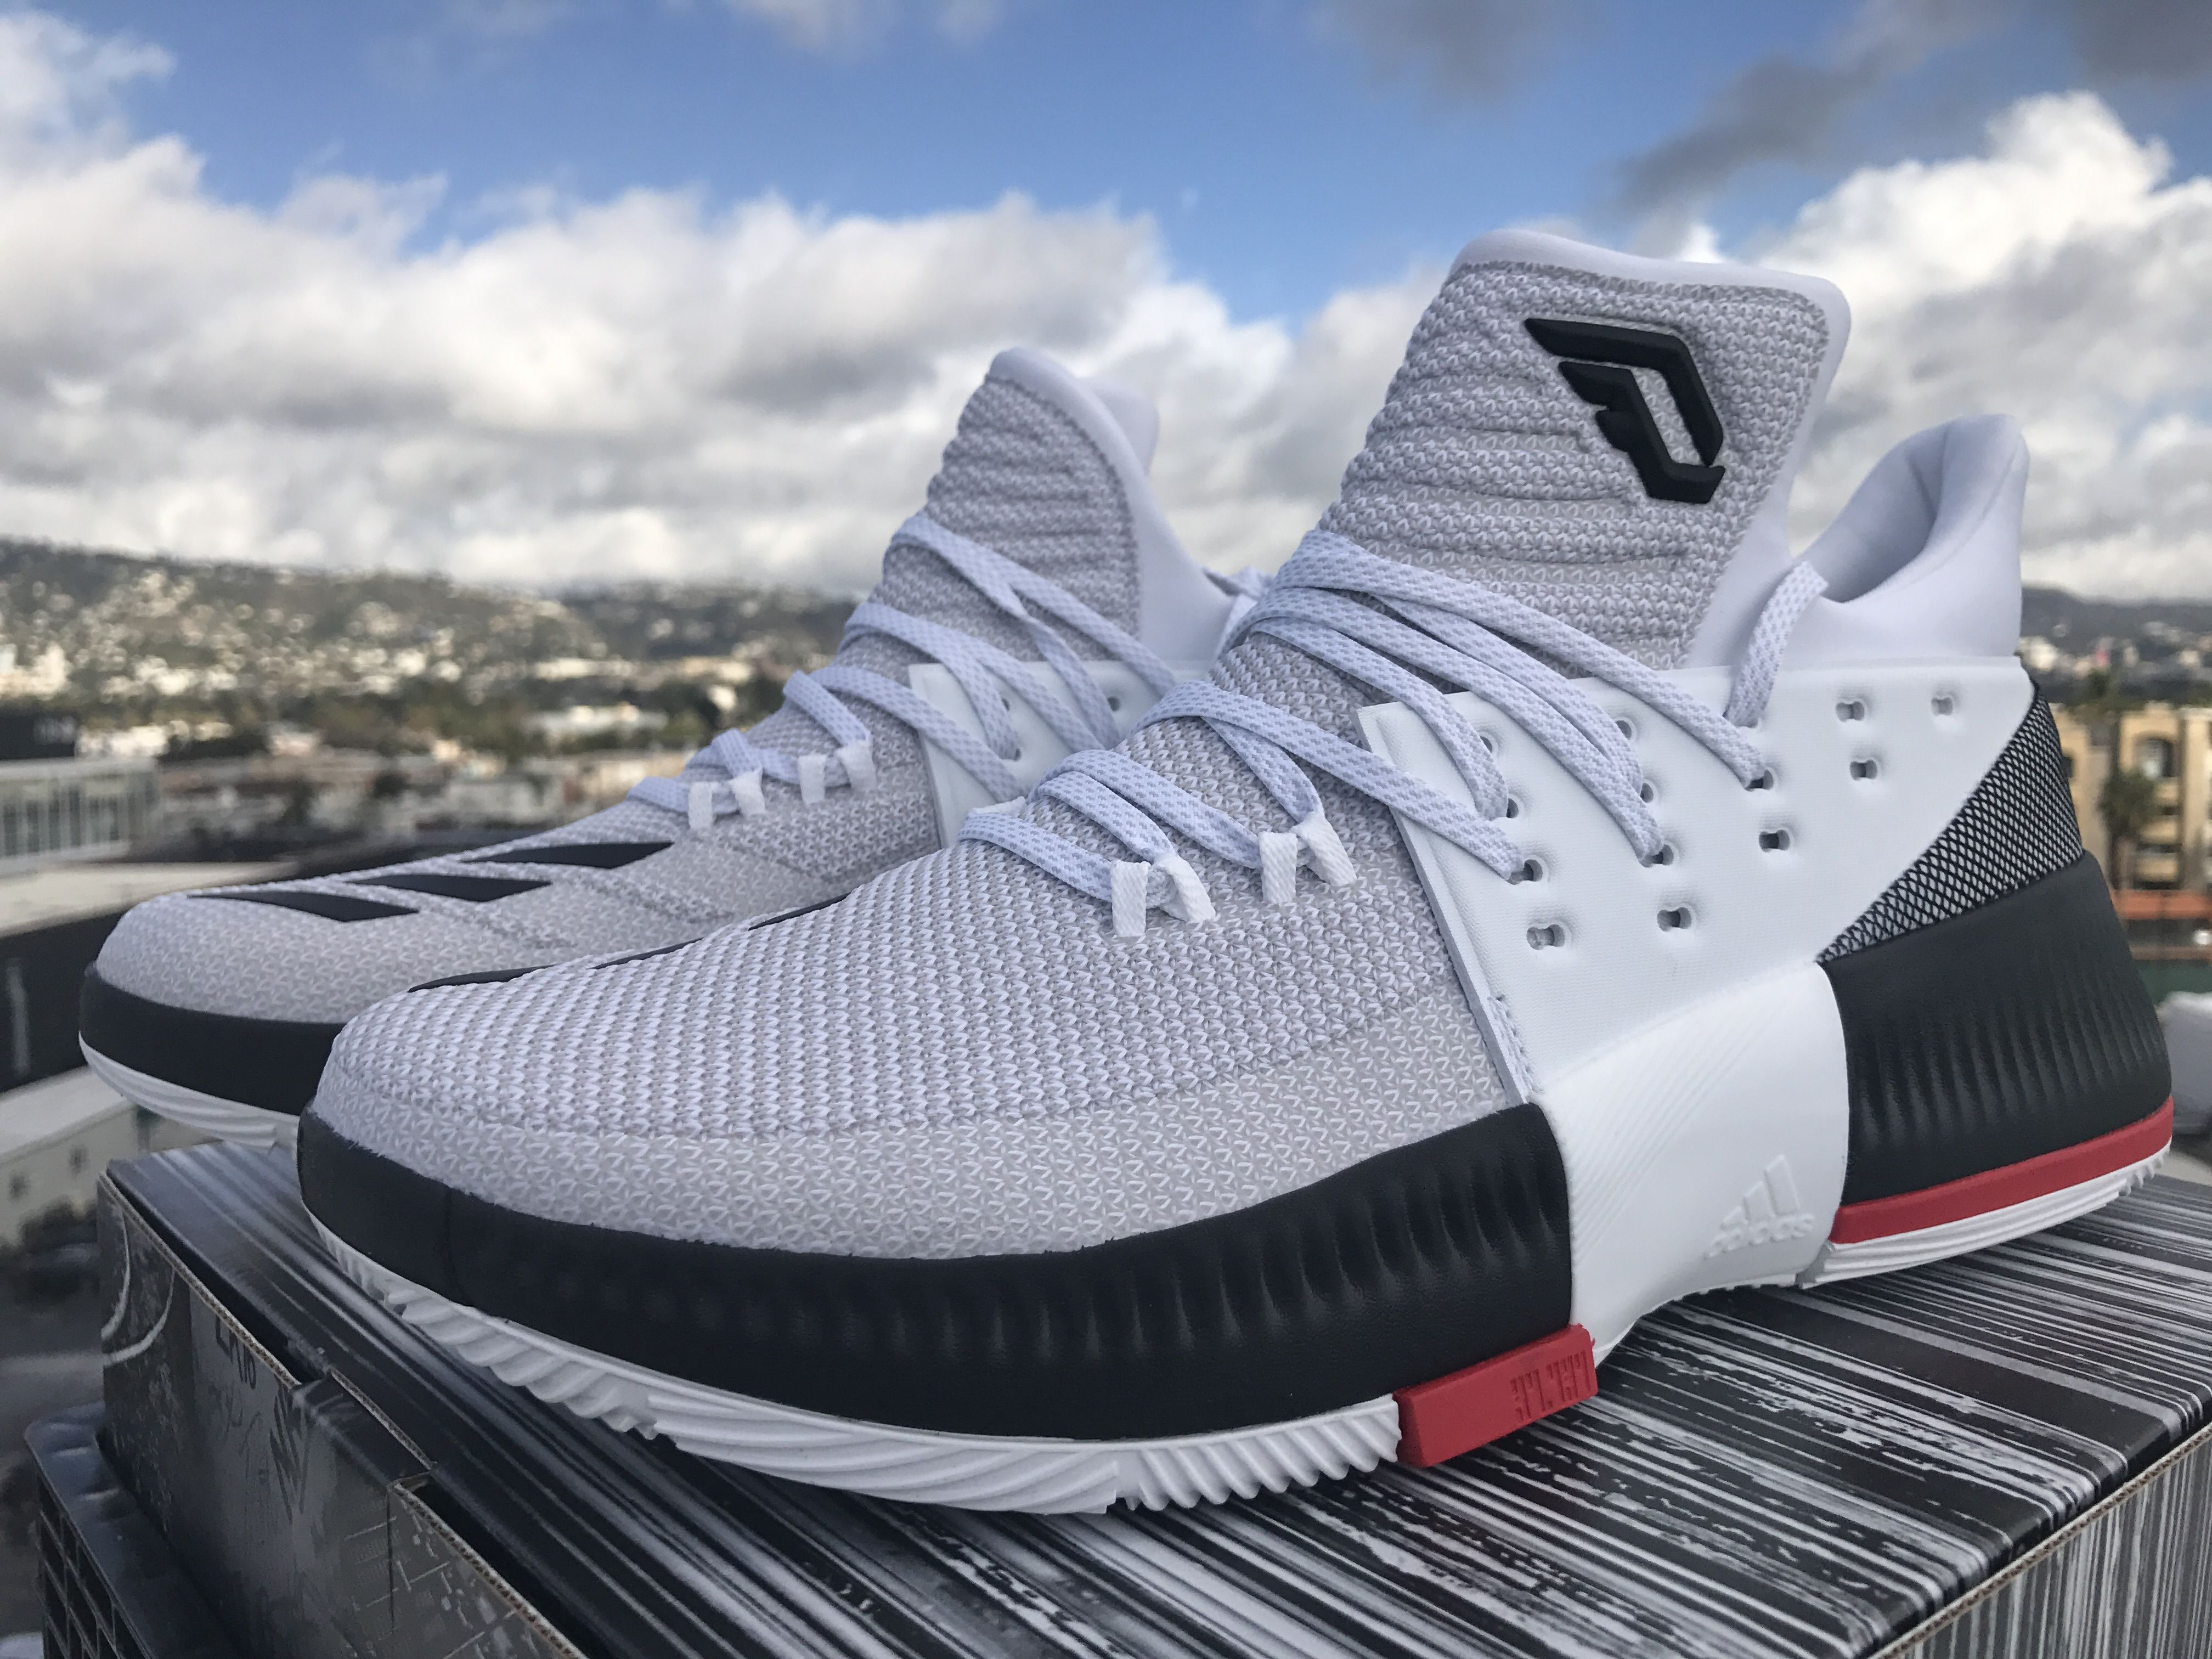 reputable site 98005 a7c2a ... kof live damian lillard gives back with the adidas dame 3 rip city  u2022 kicksonfire